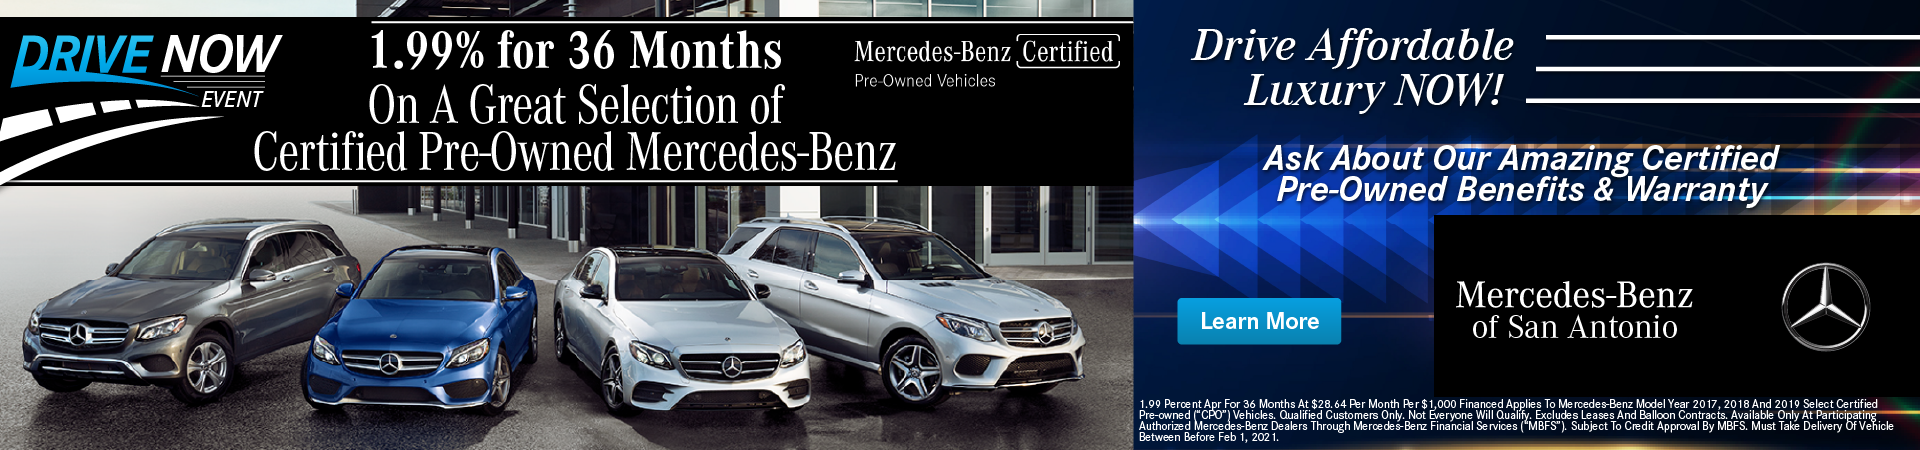 Mercedes-Benz Certified Pre-Owned 1.99% APR